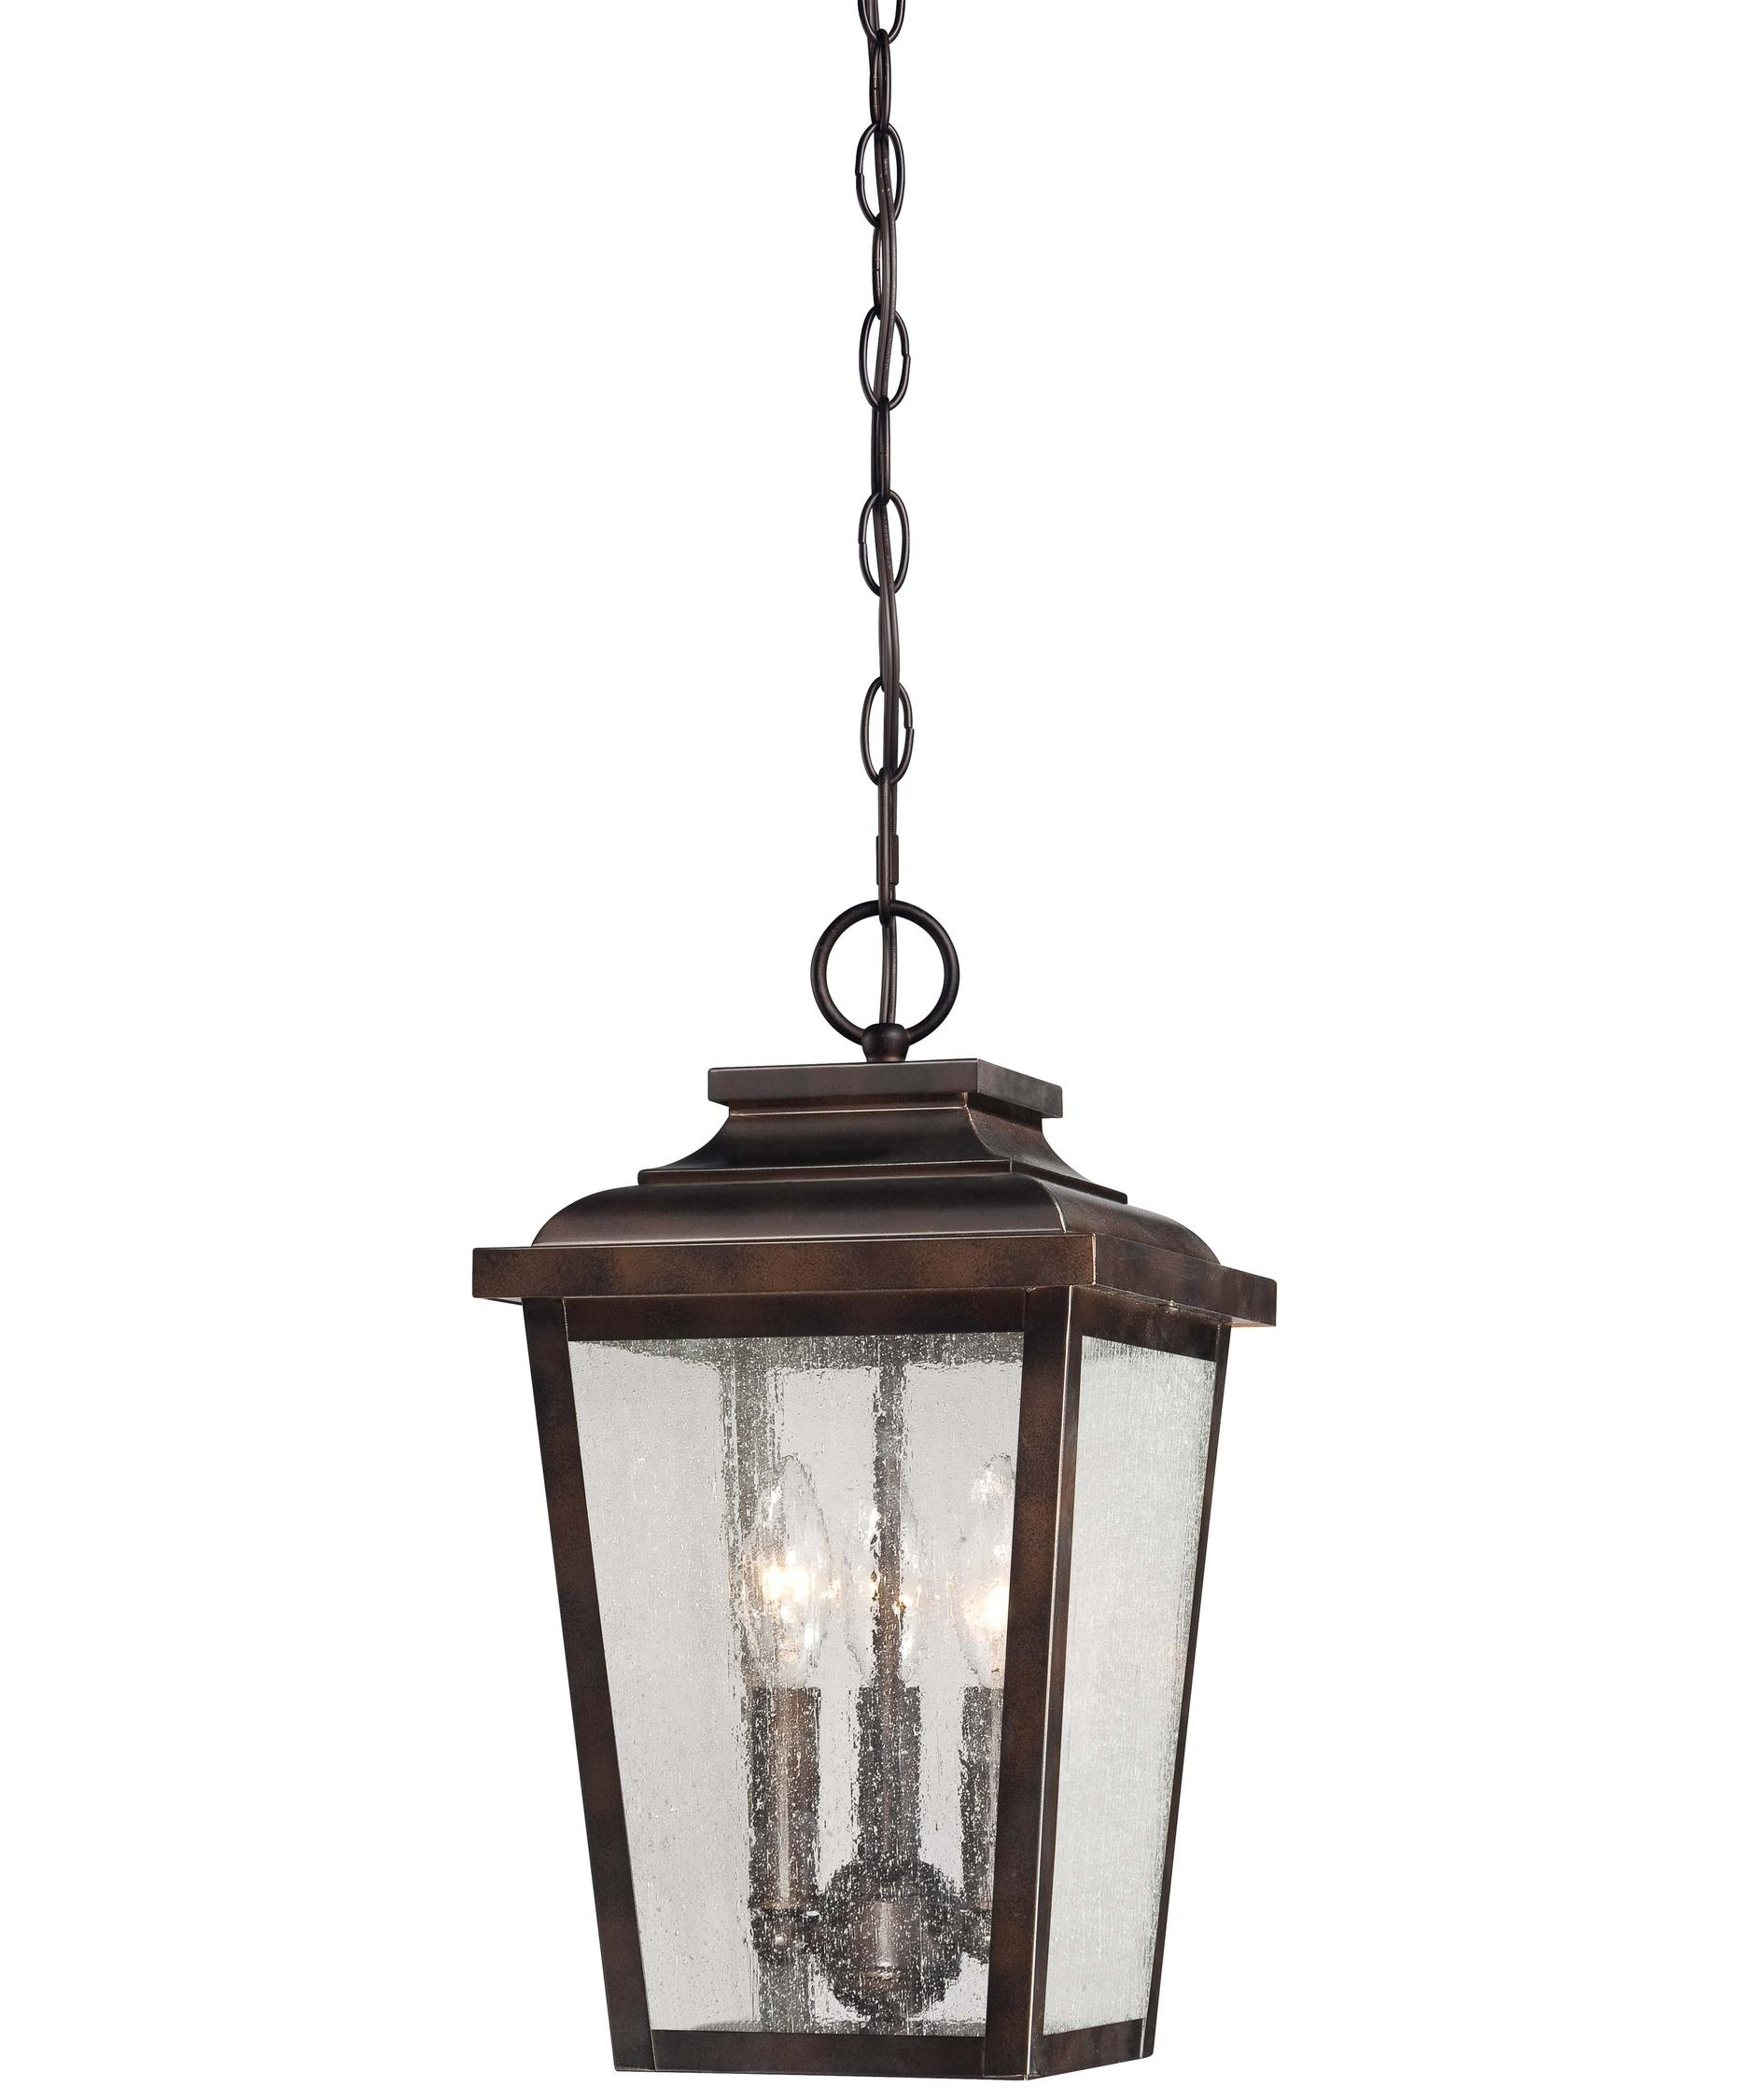 Minka Lavery 72174 Irvington Manor 9 Inch Wide 3 Light Outdoor Pertaining To Outdoor Hanging Lamps (View 2 of 15)